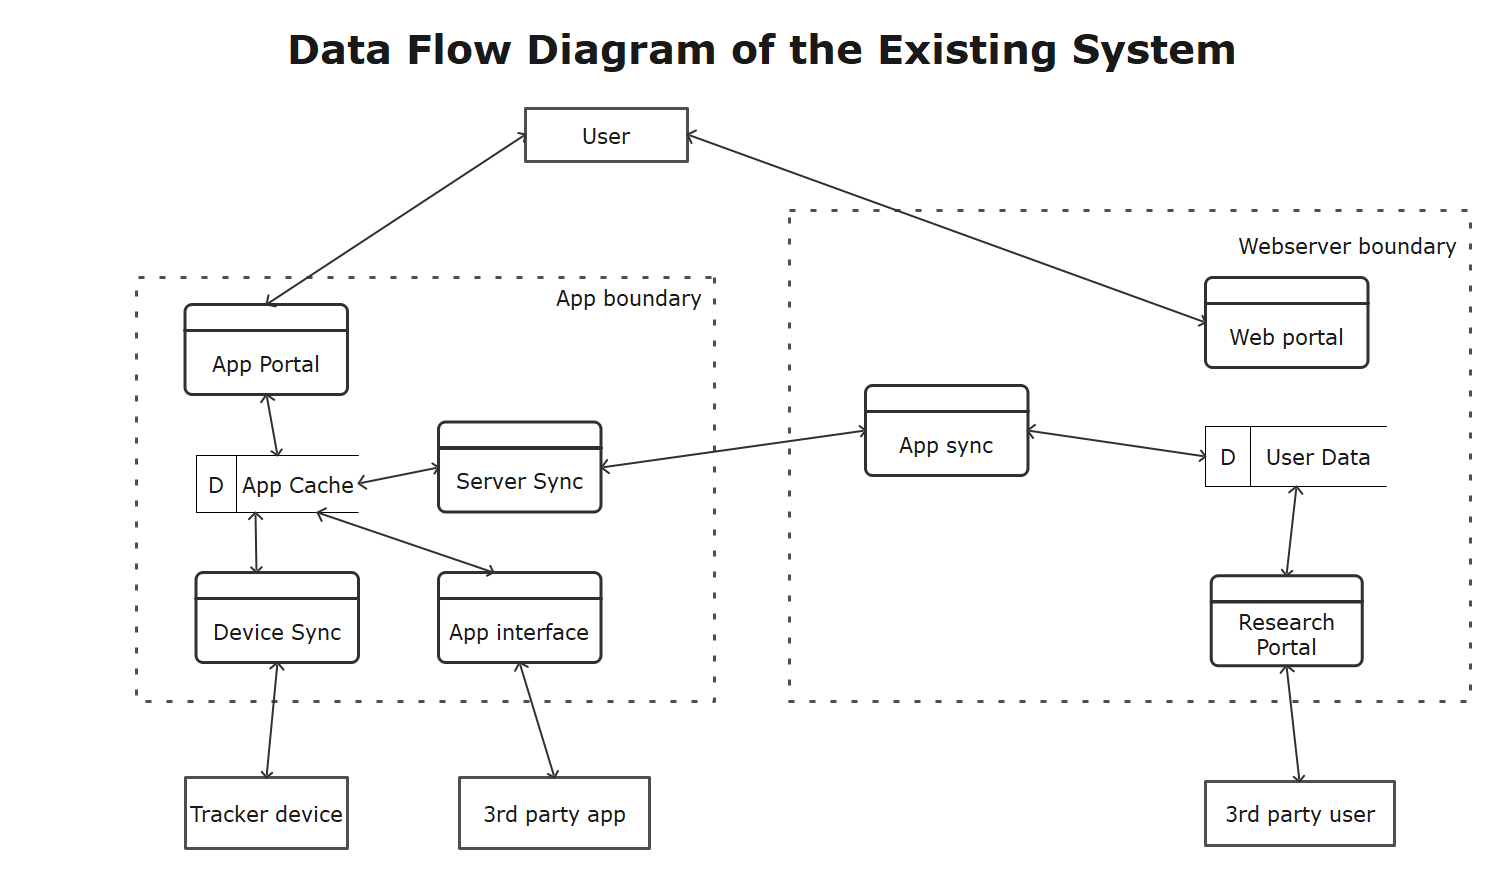 Data Flow Diagram of the Existing System